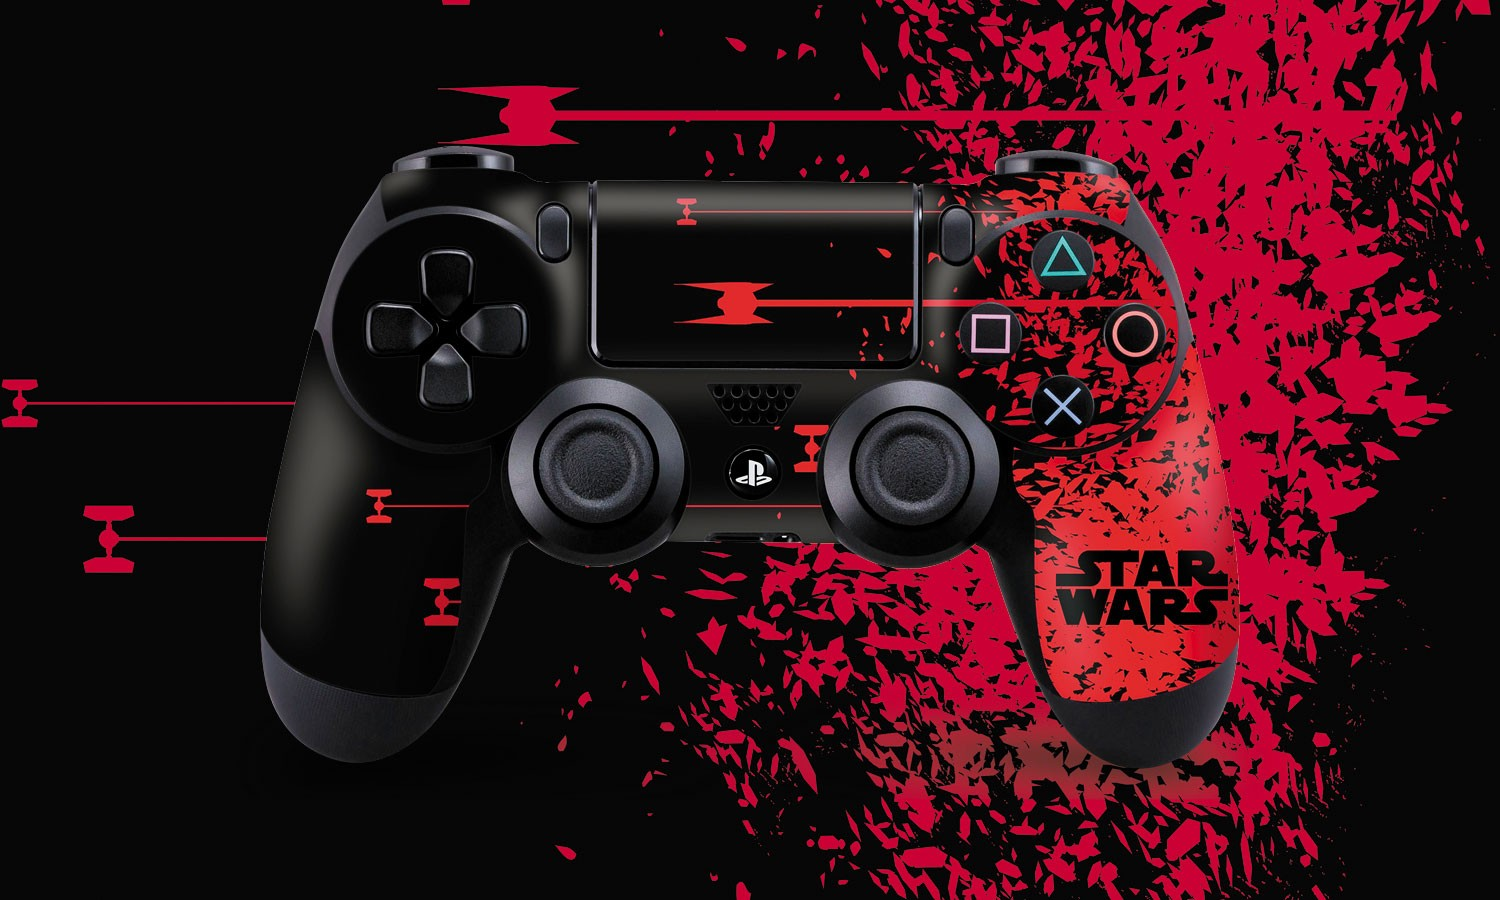 Star Wars Ps4 Controller